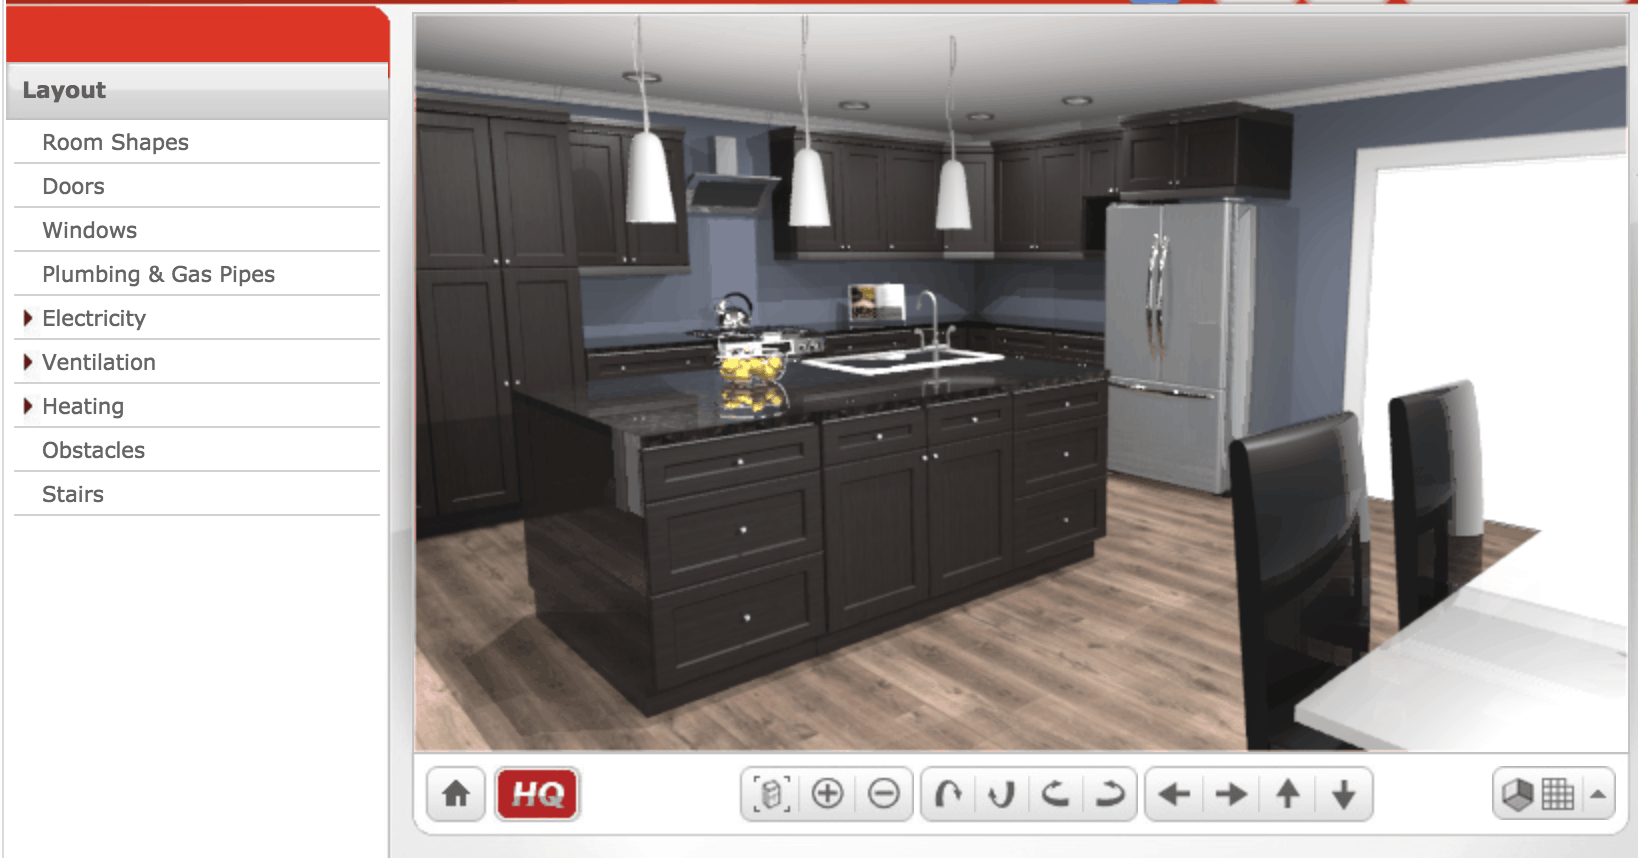 Kitchen Design Software Free Mac 16 Best Online Kitchen Design Software Options Free & Paid